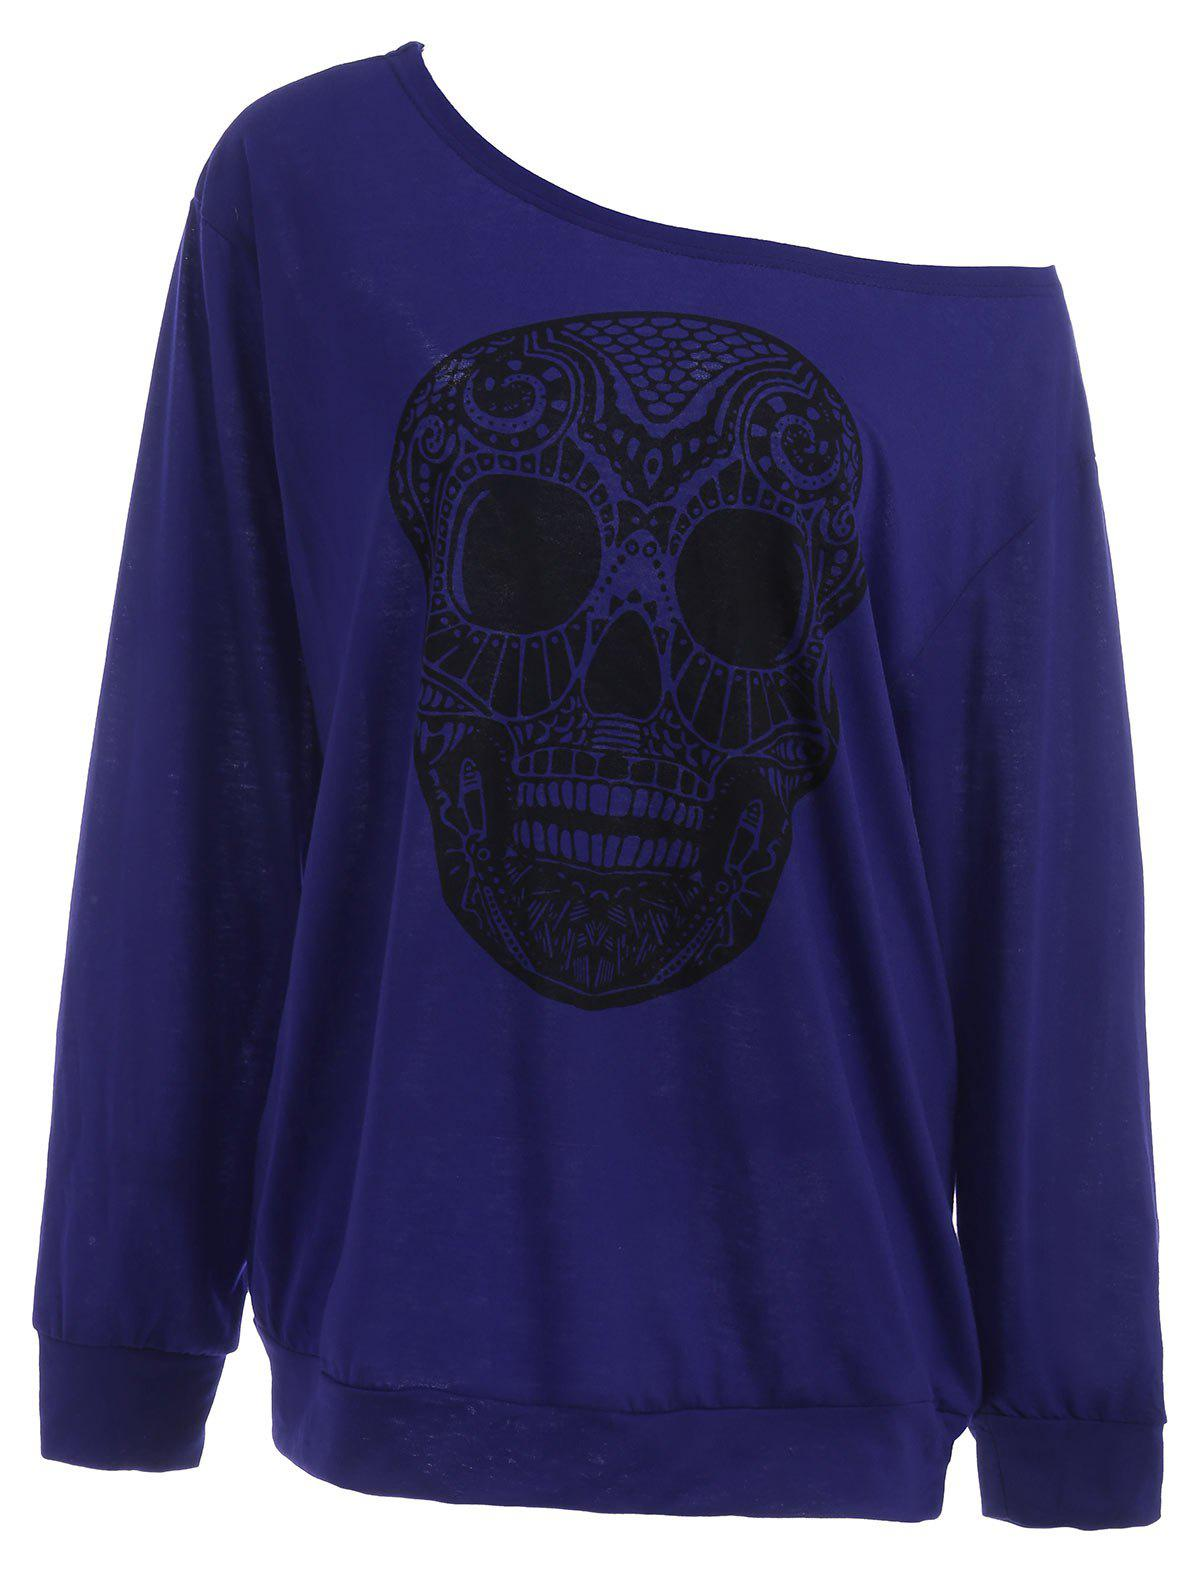 Plus Size Skull Skew Collar Sweatshirt plus size christmas reindeer skew collar sweatshirt